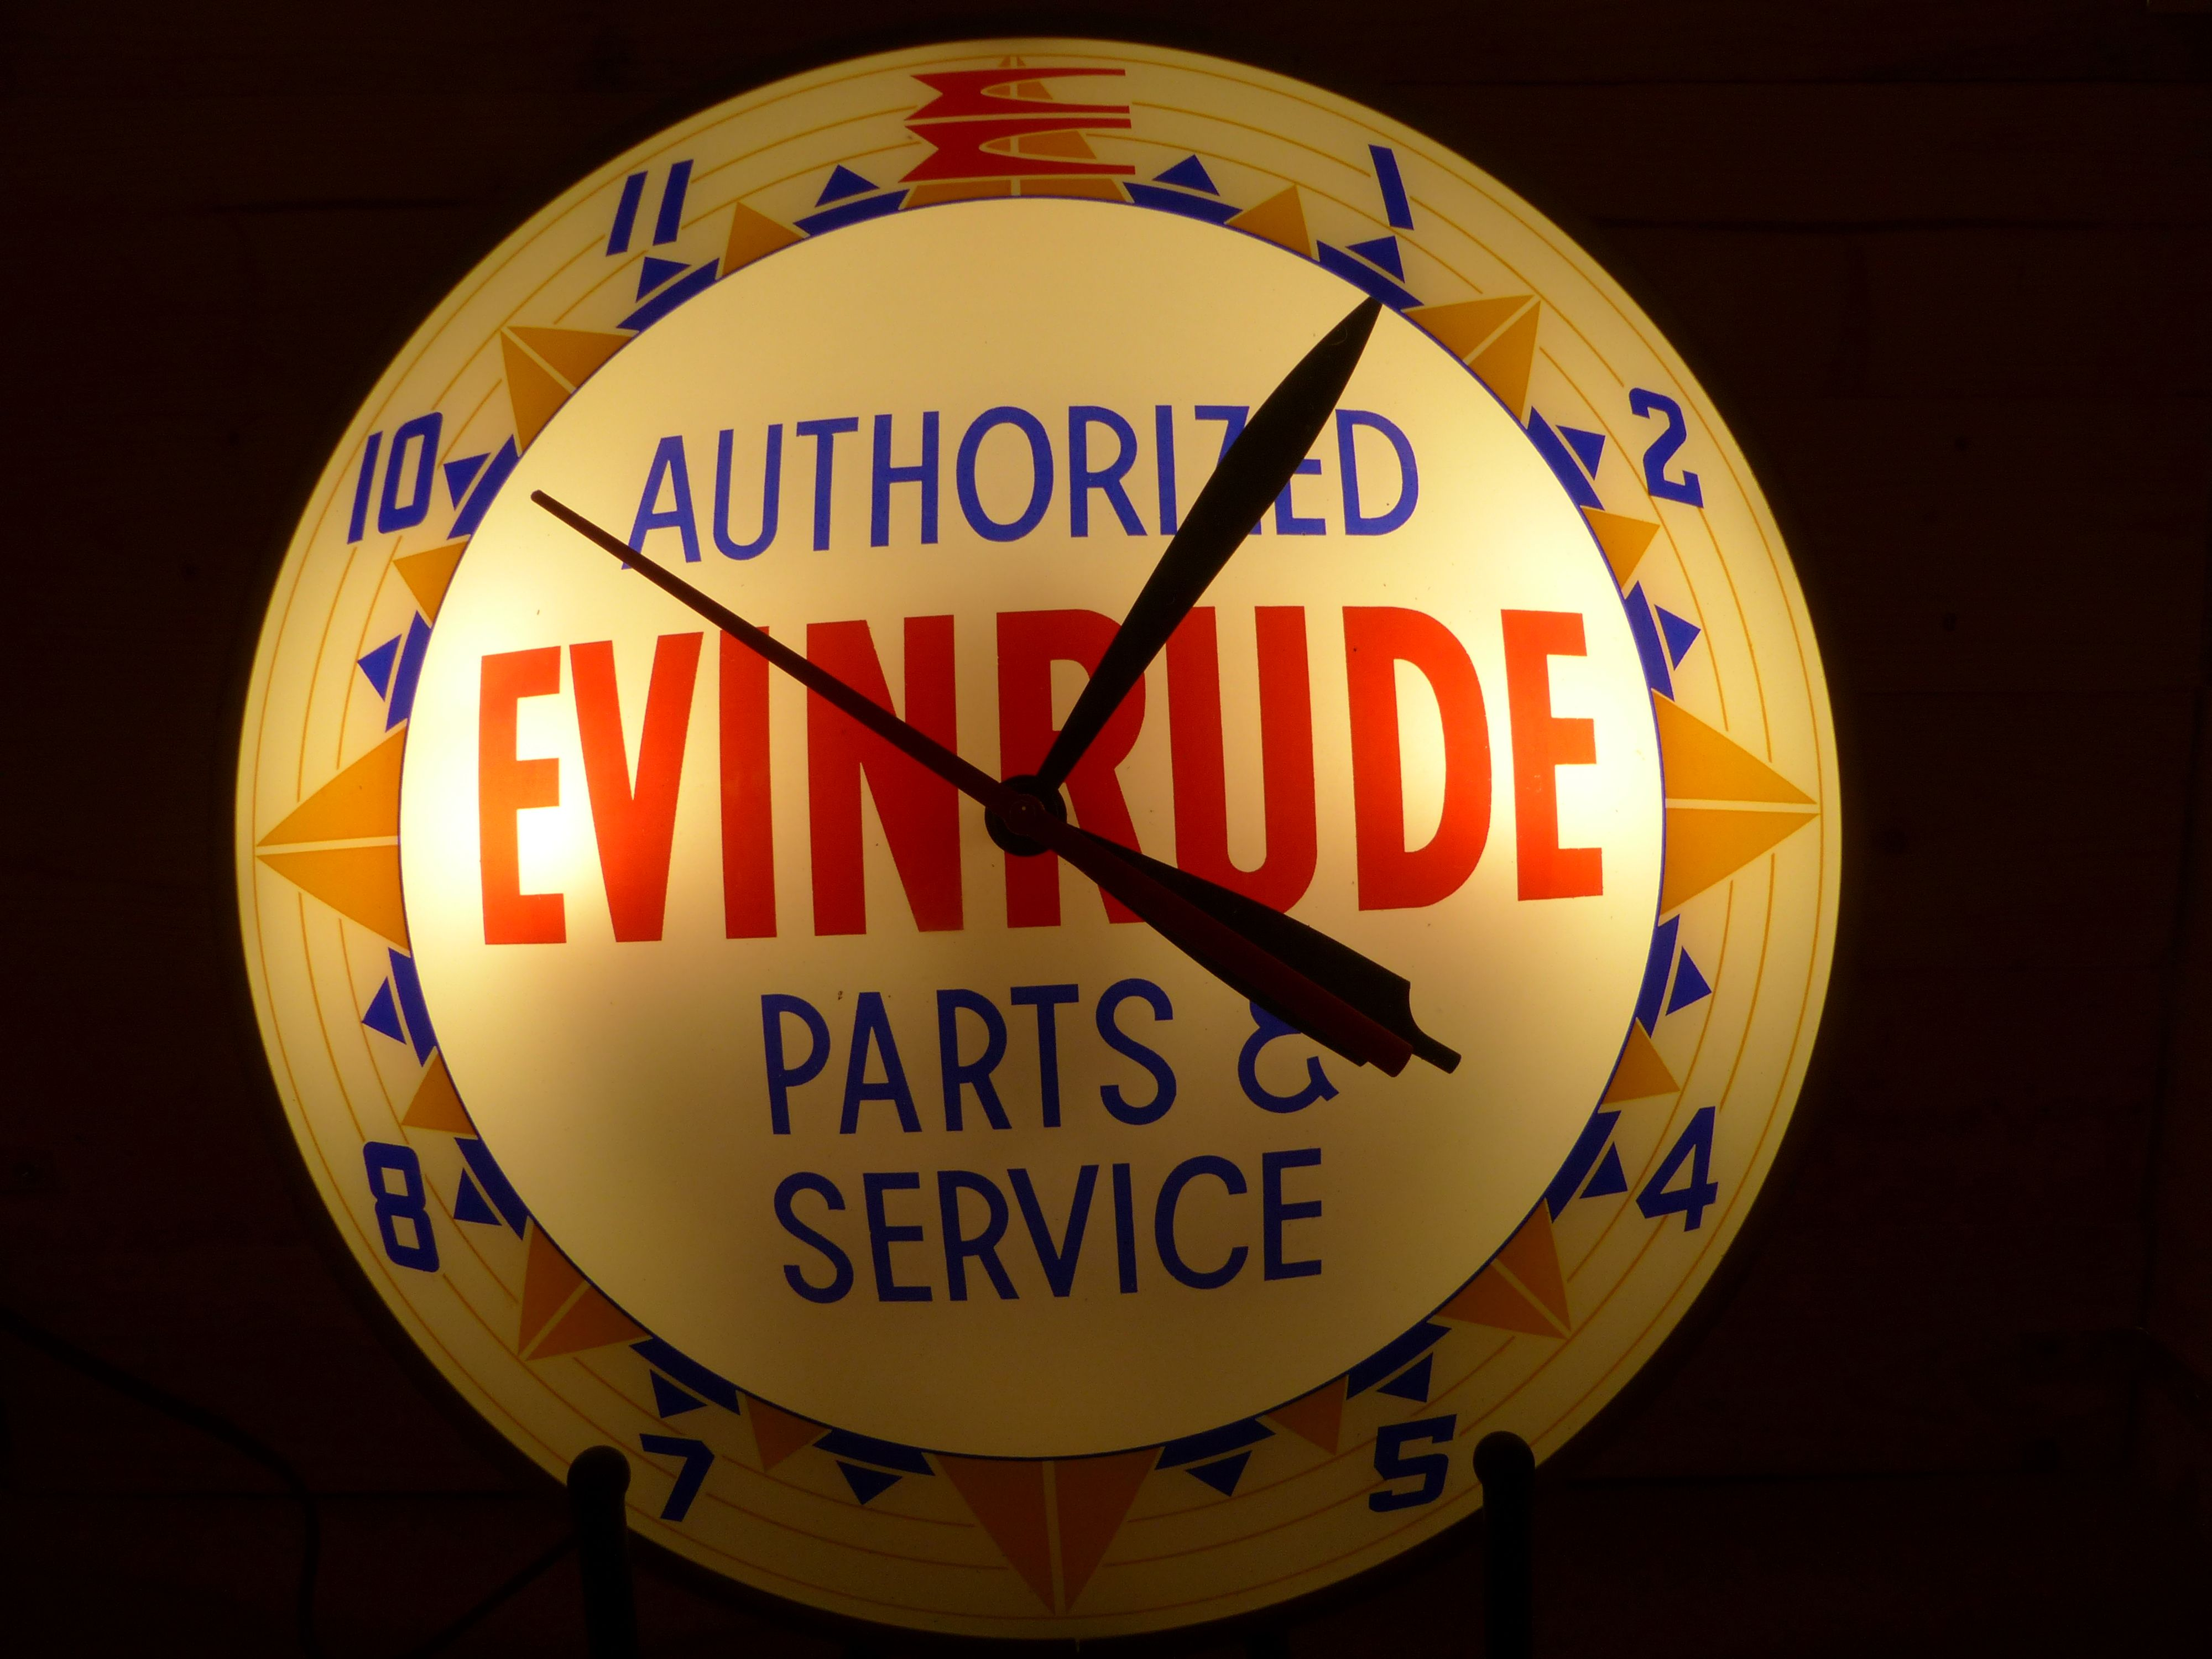 Evinrude Outboard Motors double bubble lighted wall clock